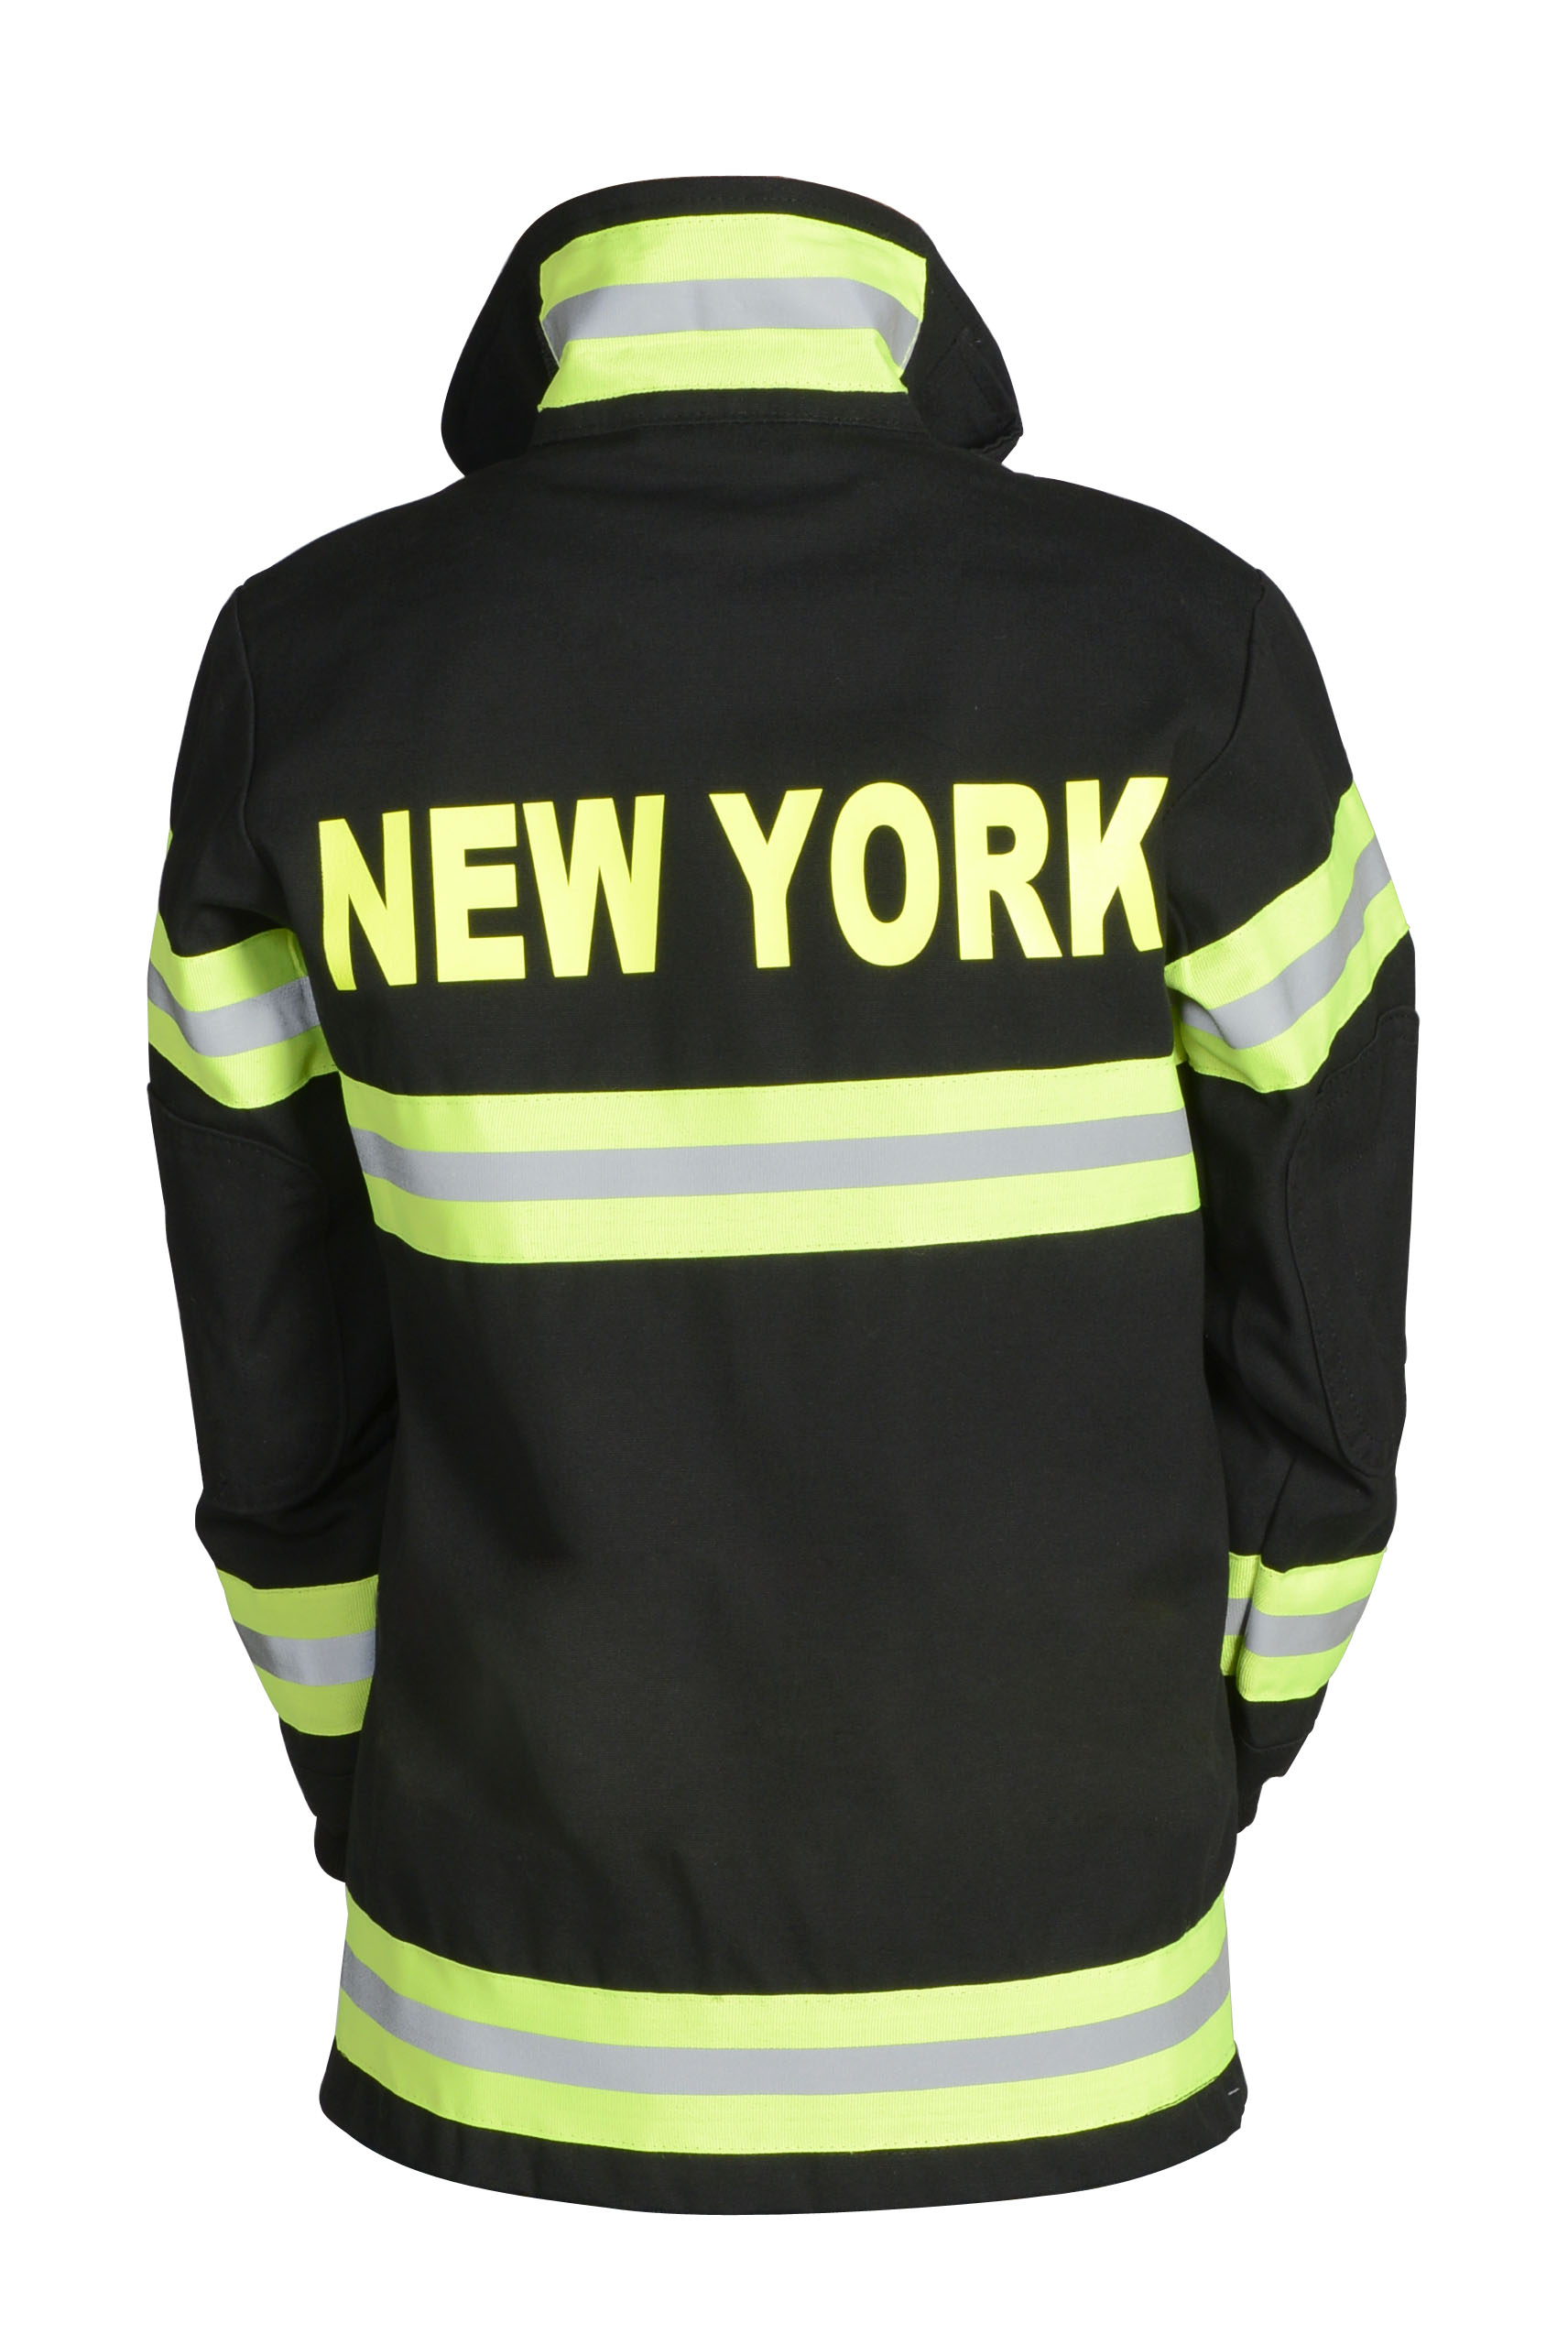 Adult Firefighter Suit-New York In Tan or Black by Aeromax